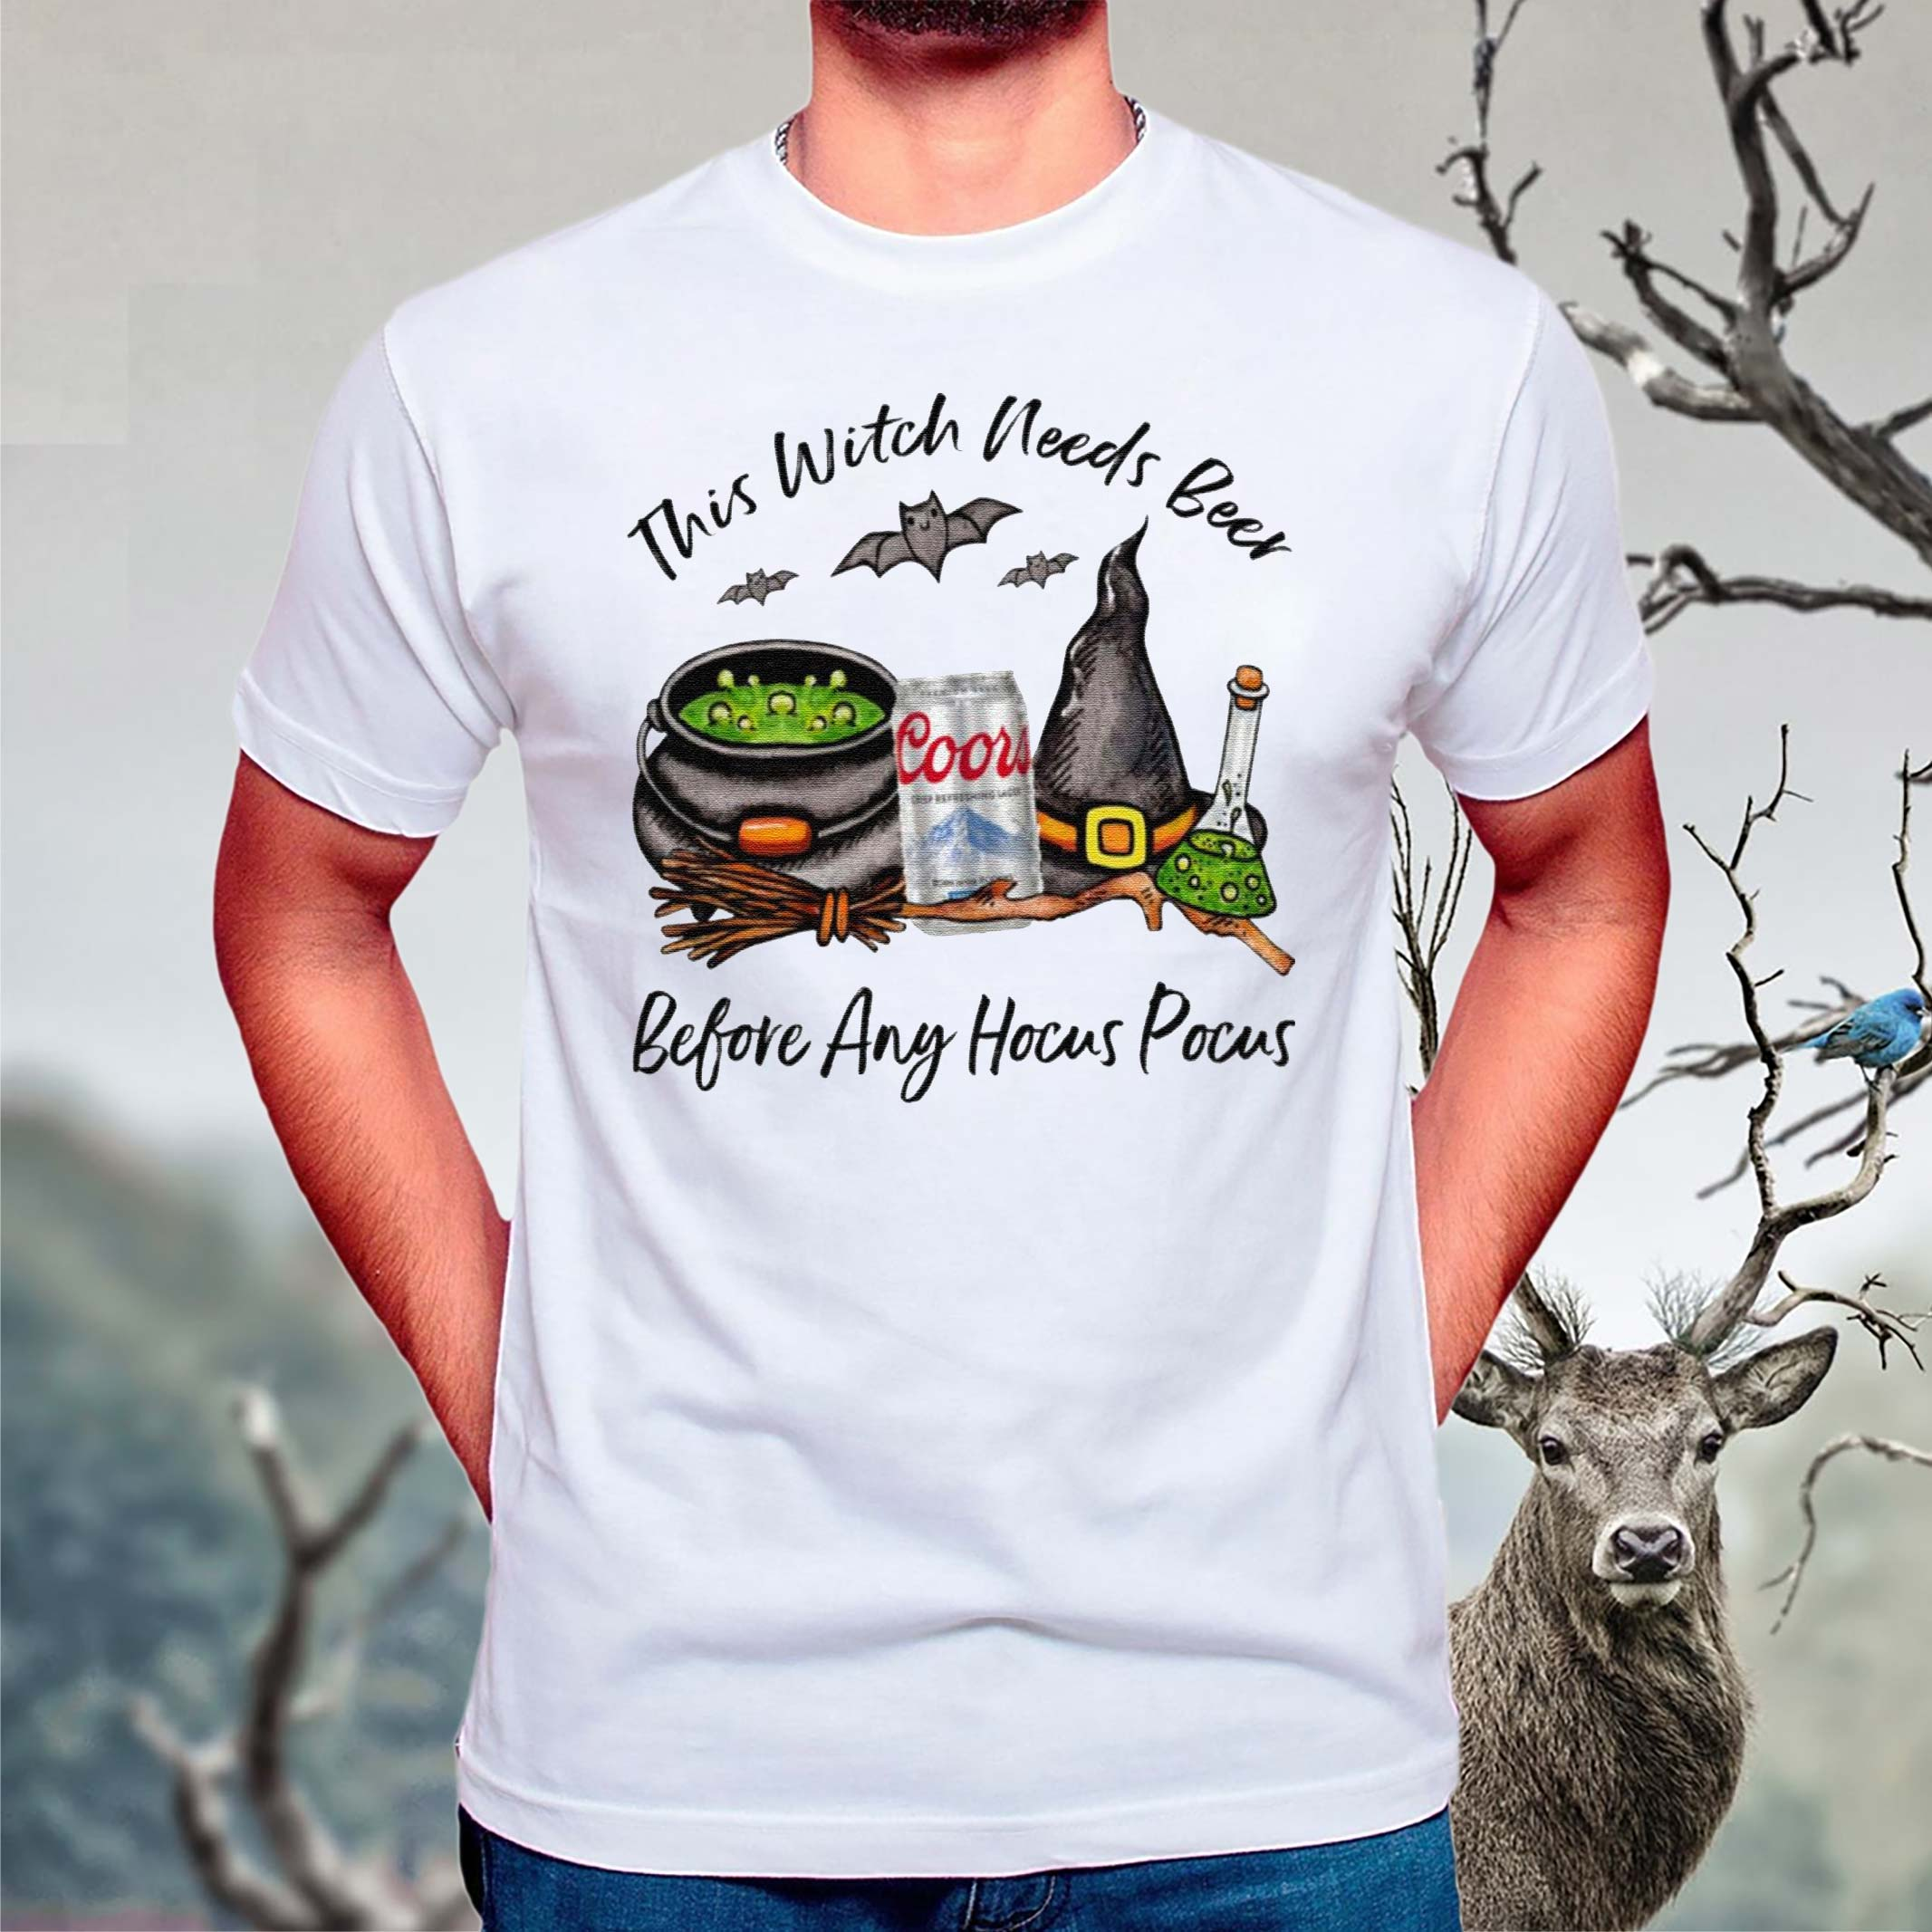 Coors-Lager-Can-This-Witch-Needs-Beer-Before-Any-Hocus-Pocus-T-Shirt